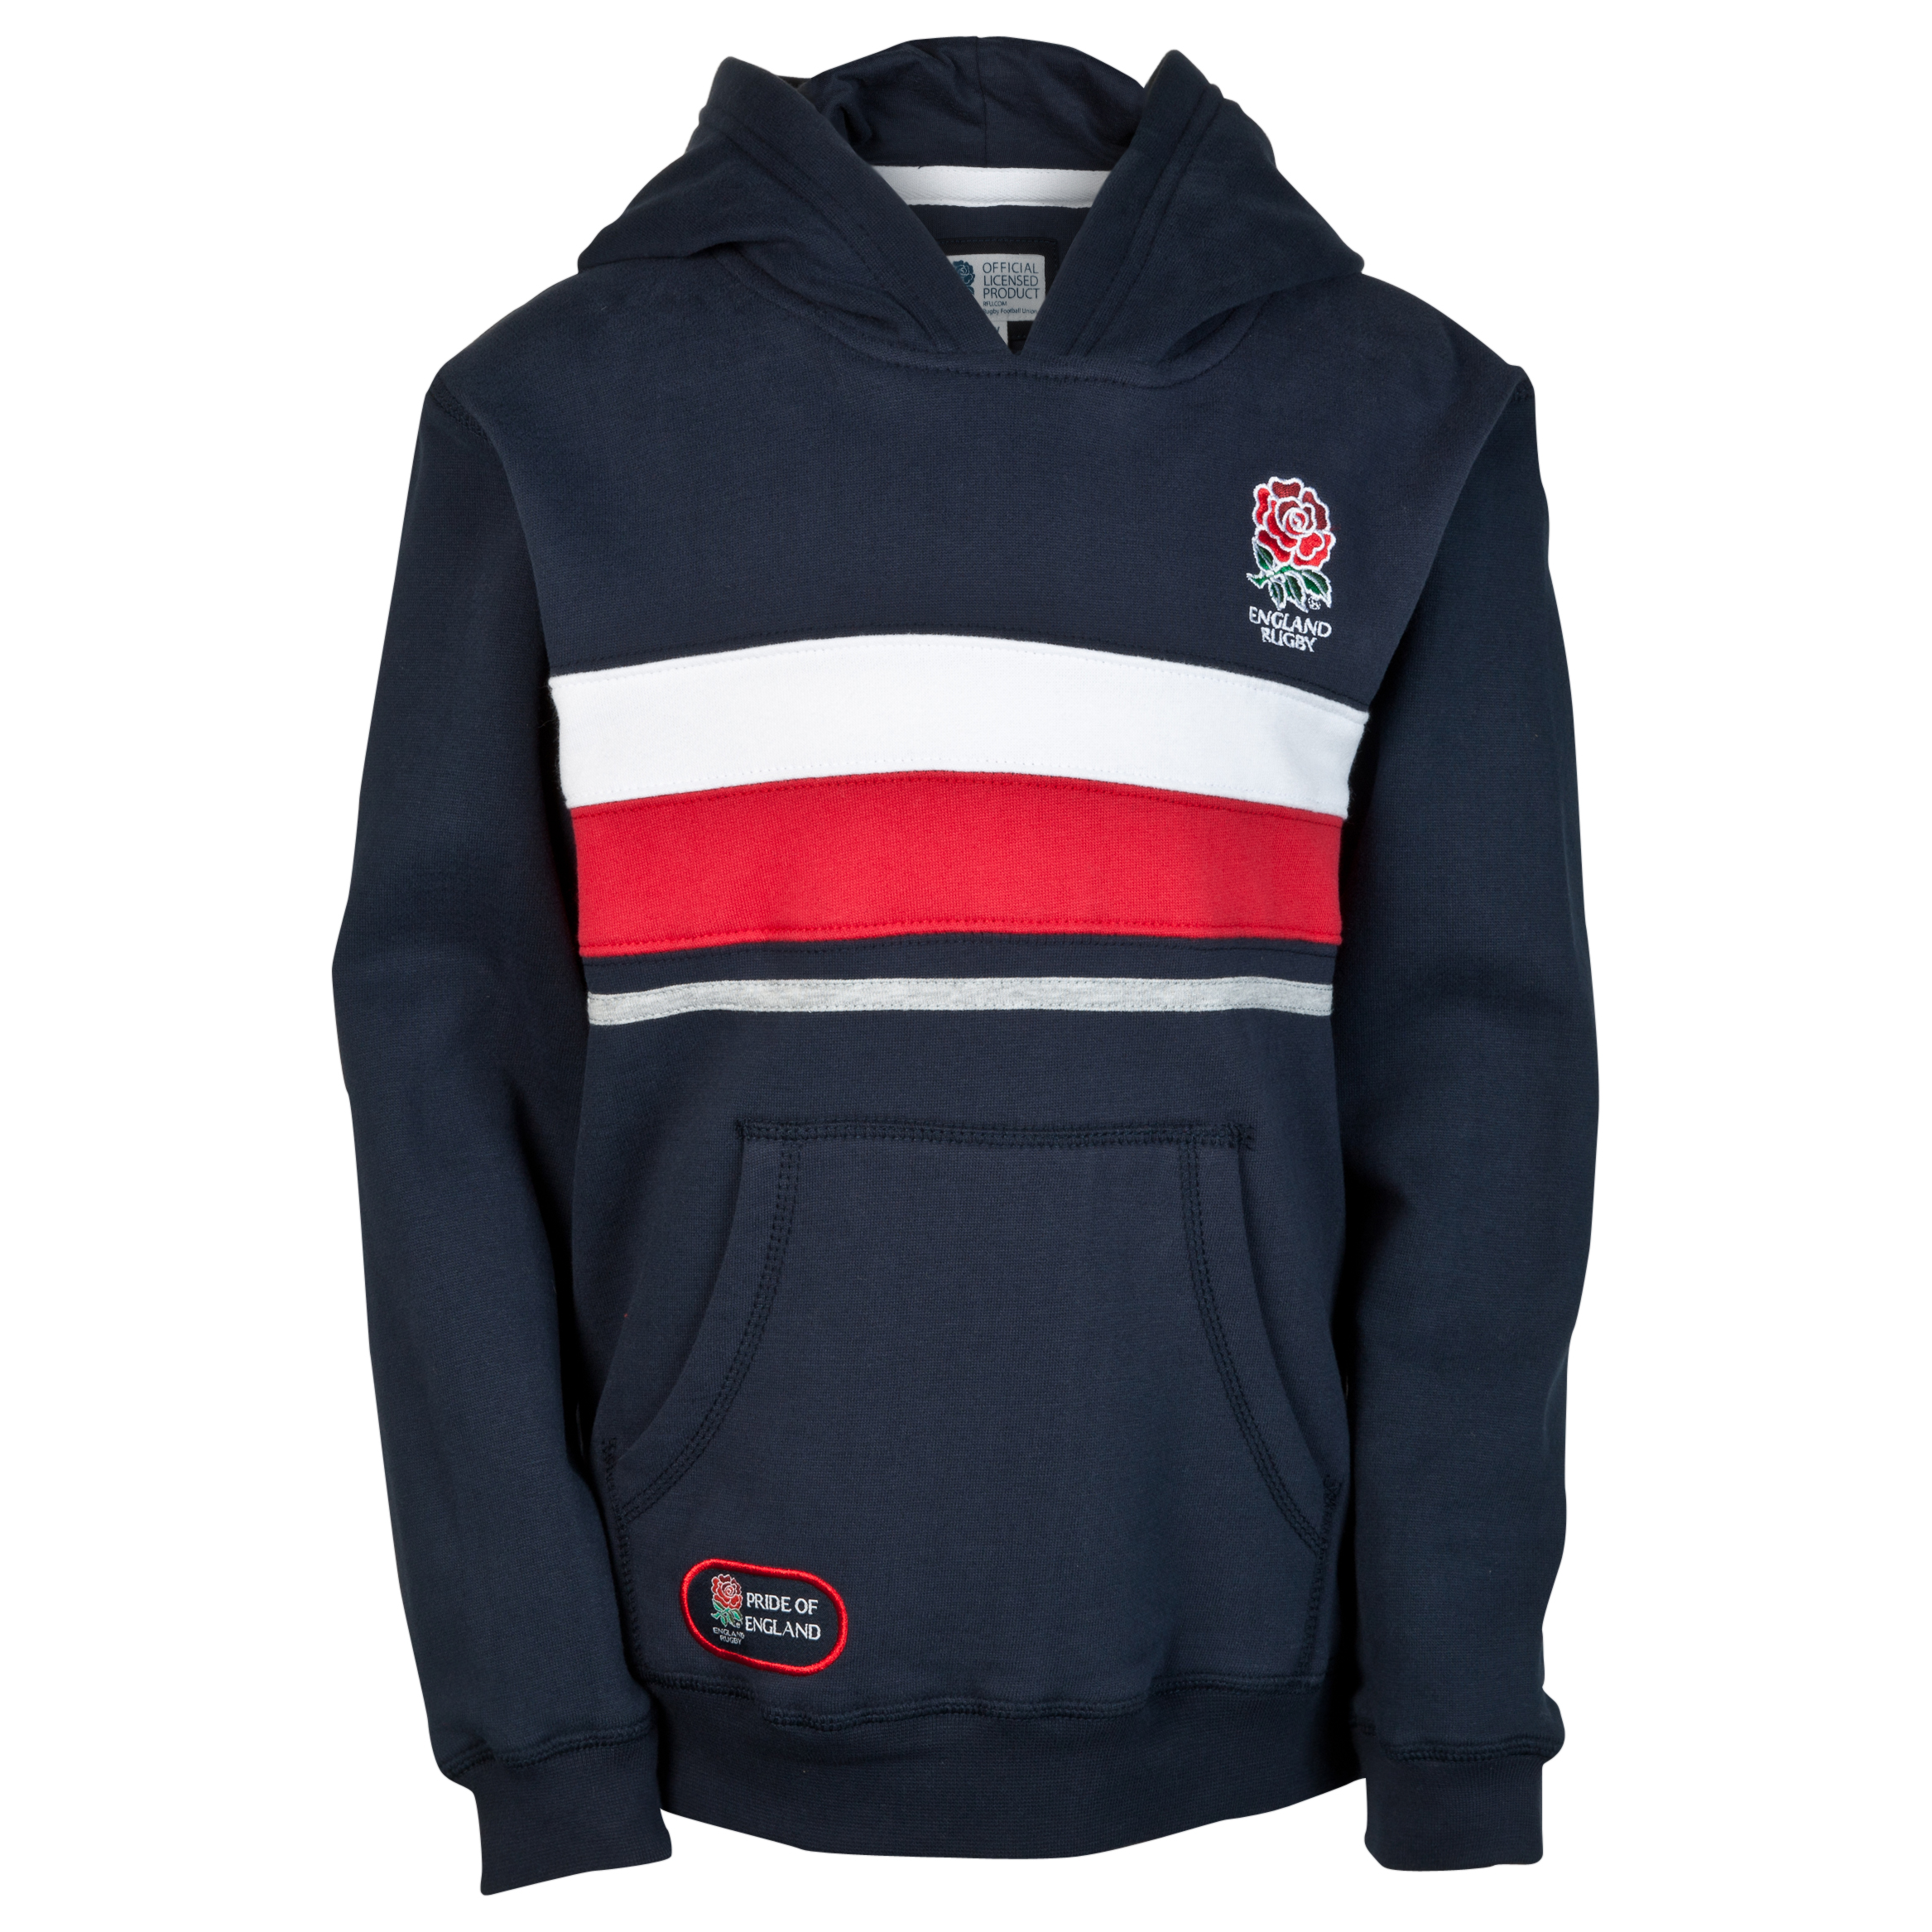 England Rugby Classics Collection Hoody - Boys Navy